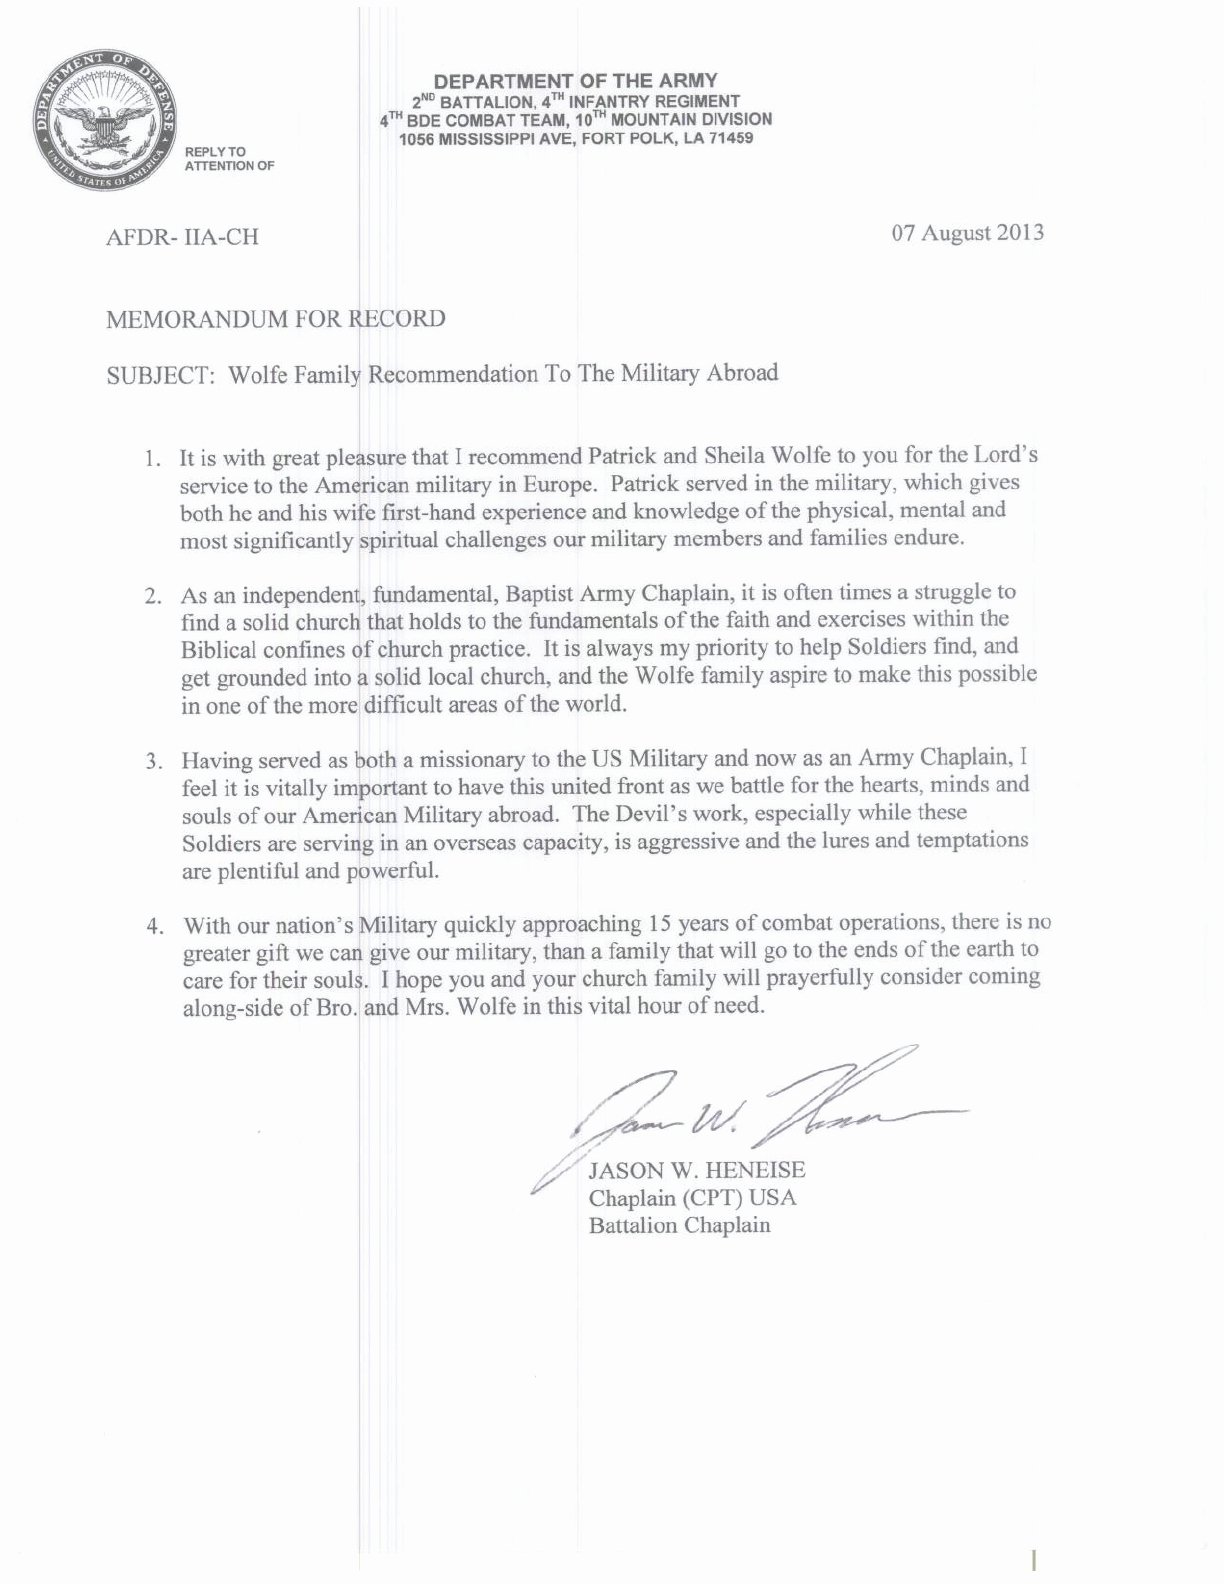 Military Letter Of Recommendation Examples Lovely Best S Of Army Ficer Letter Re Mendation Air